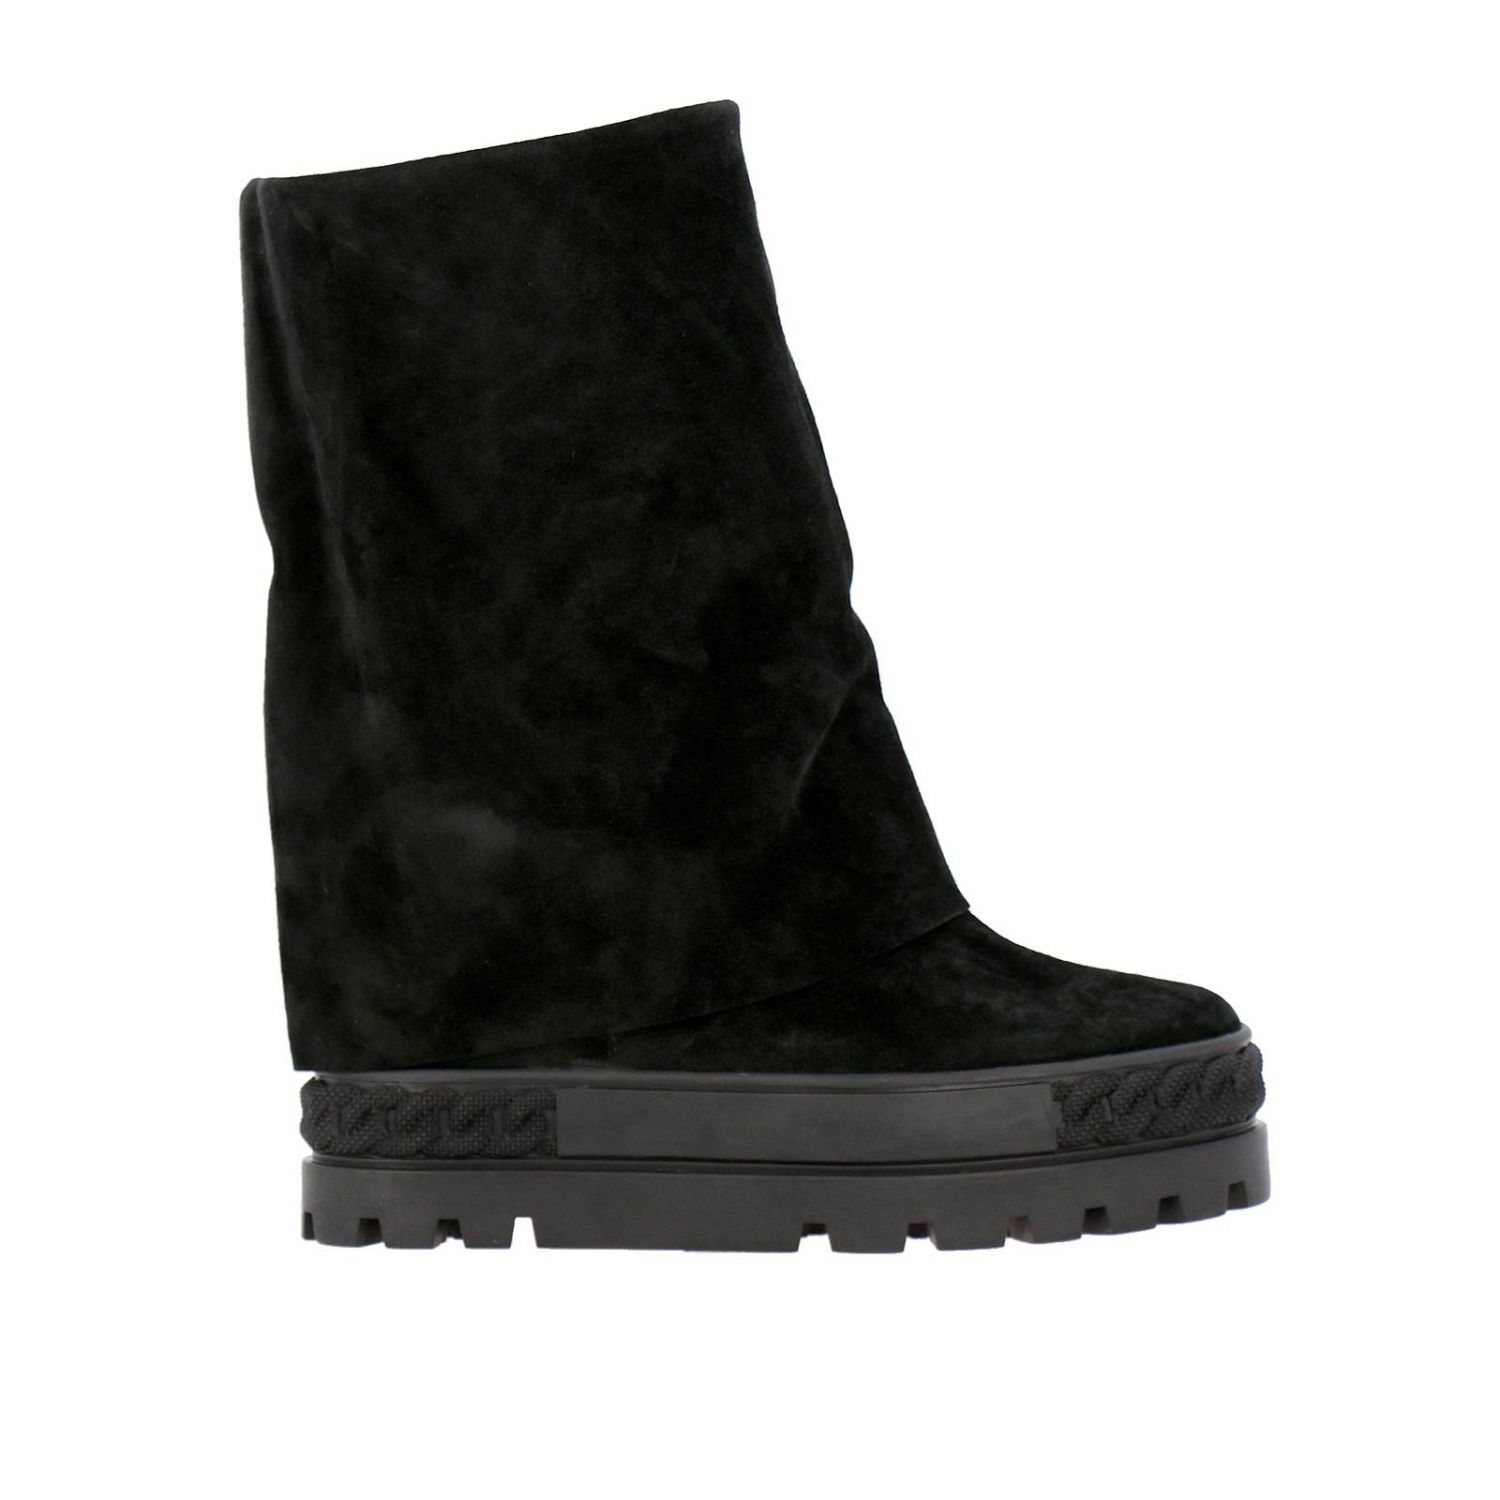 Renna Casadei double face sneaker boots in suede black 1